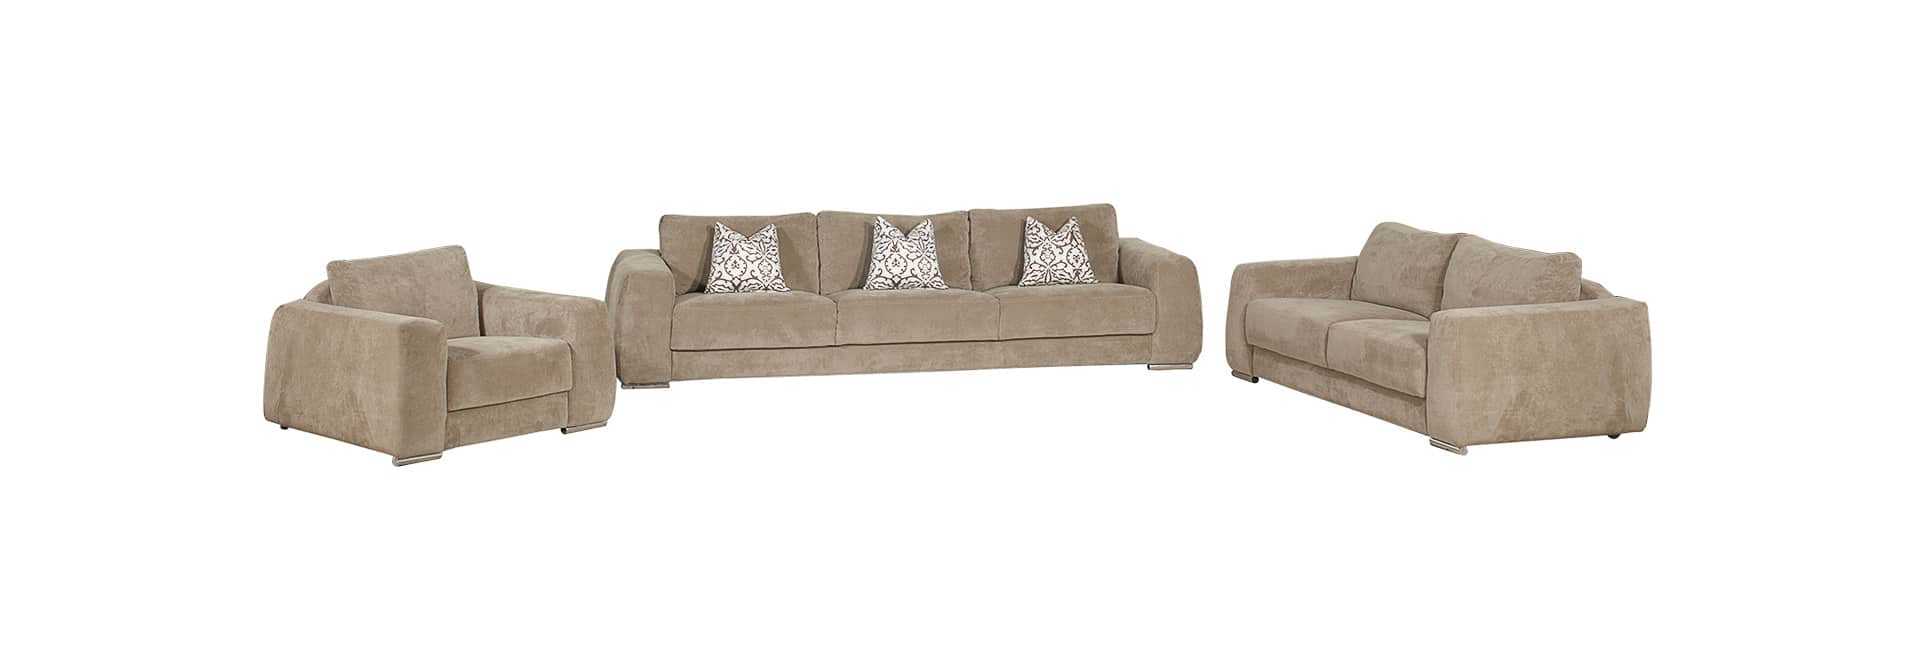 Alpine Lounge Parma 3 Piece Suite - Danie Du Toit Furnishers